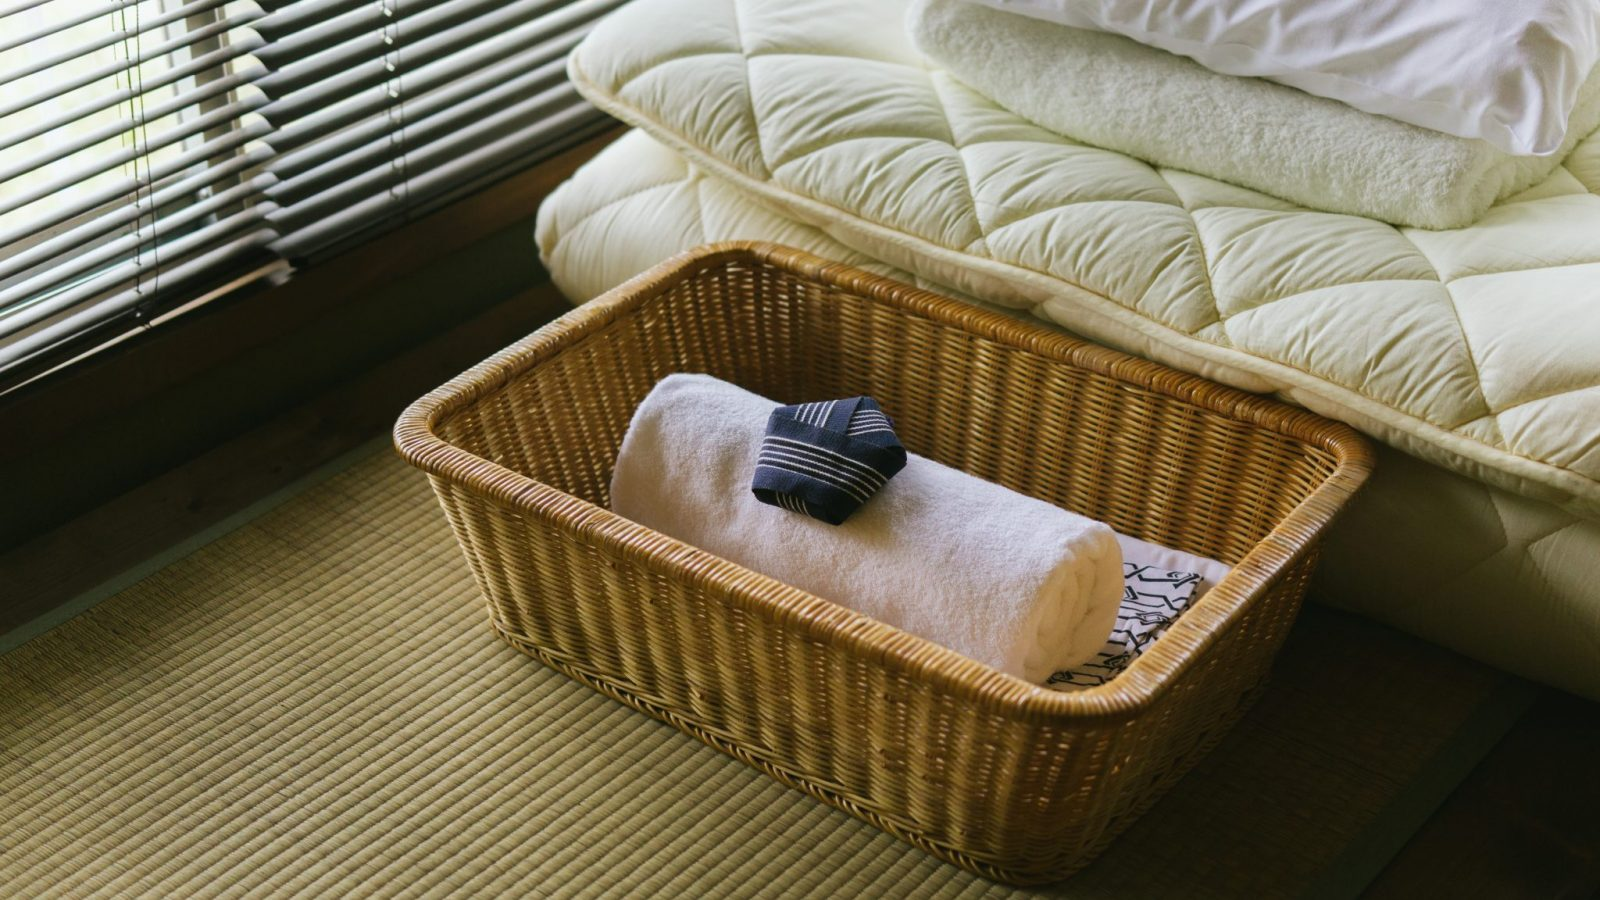 Clean futons, linens, towels, and yukata for all guests staying at Retreat wabi-sabi Shimoda